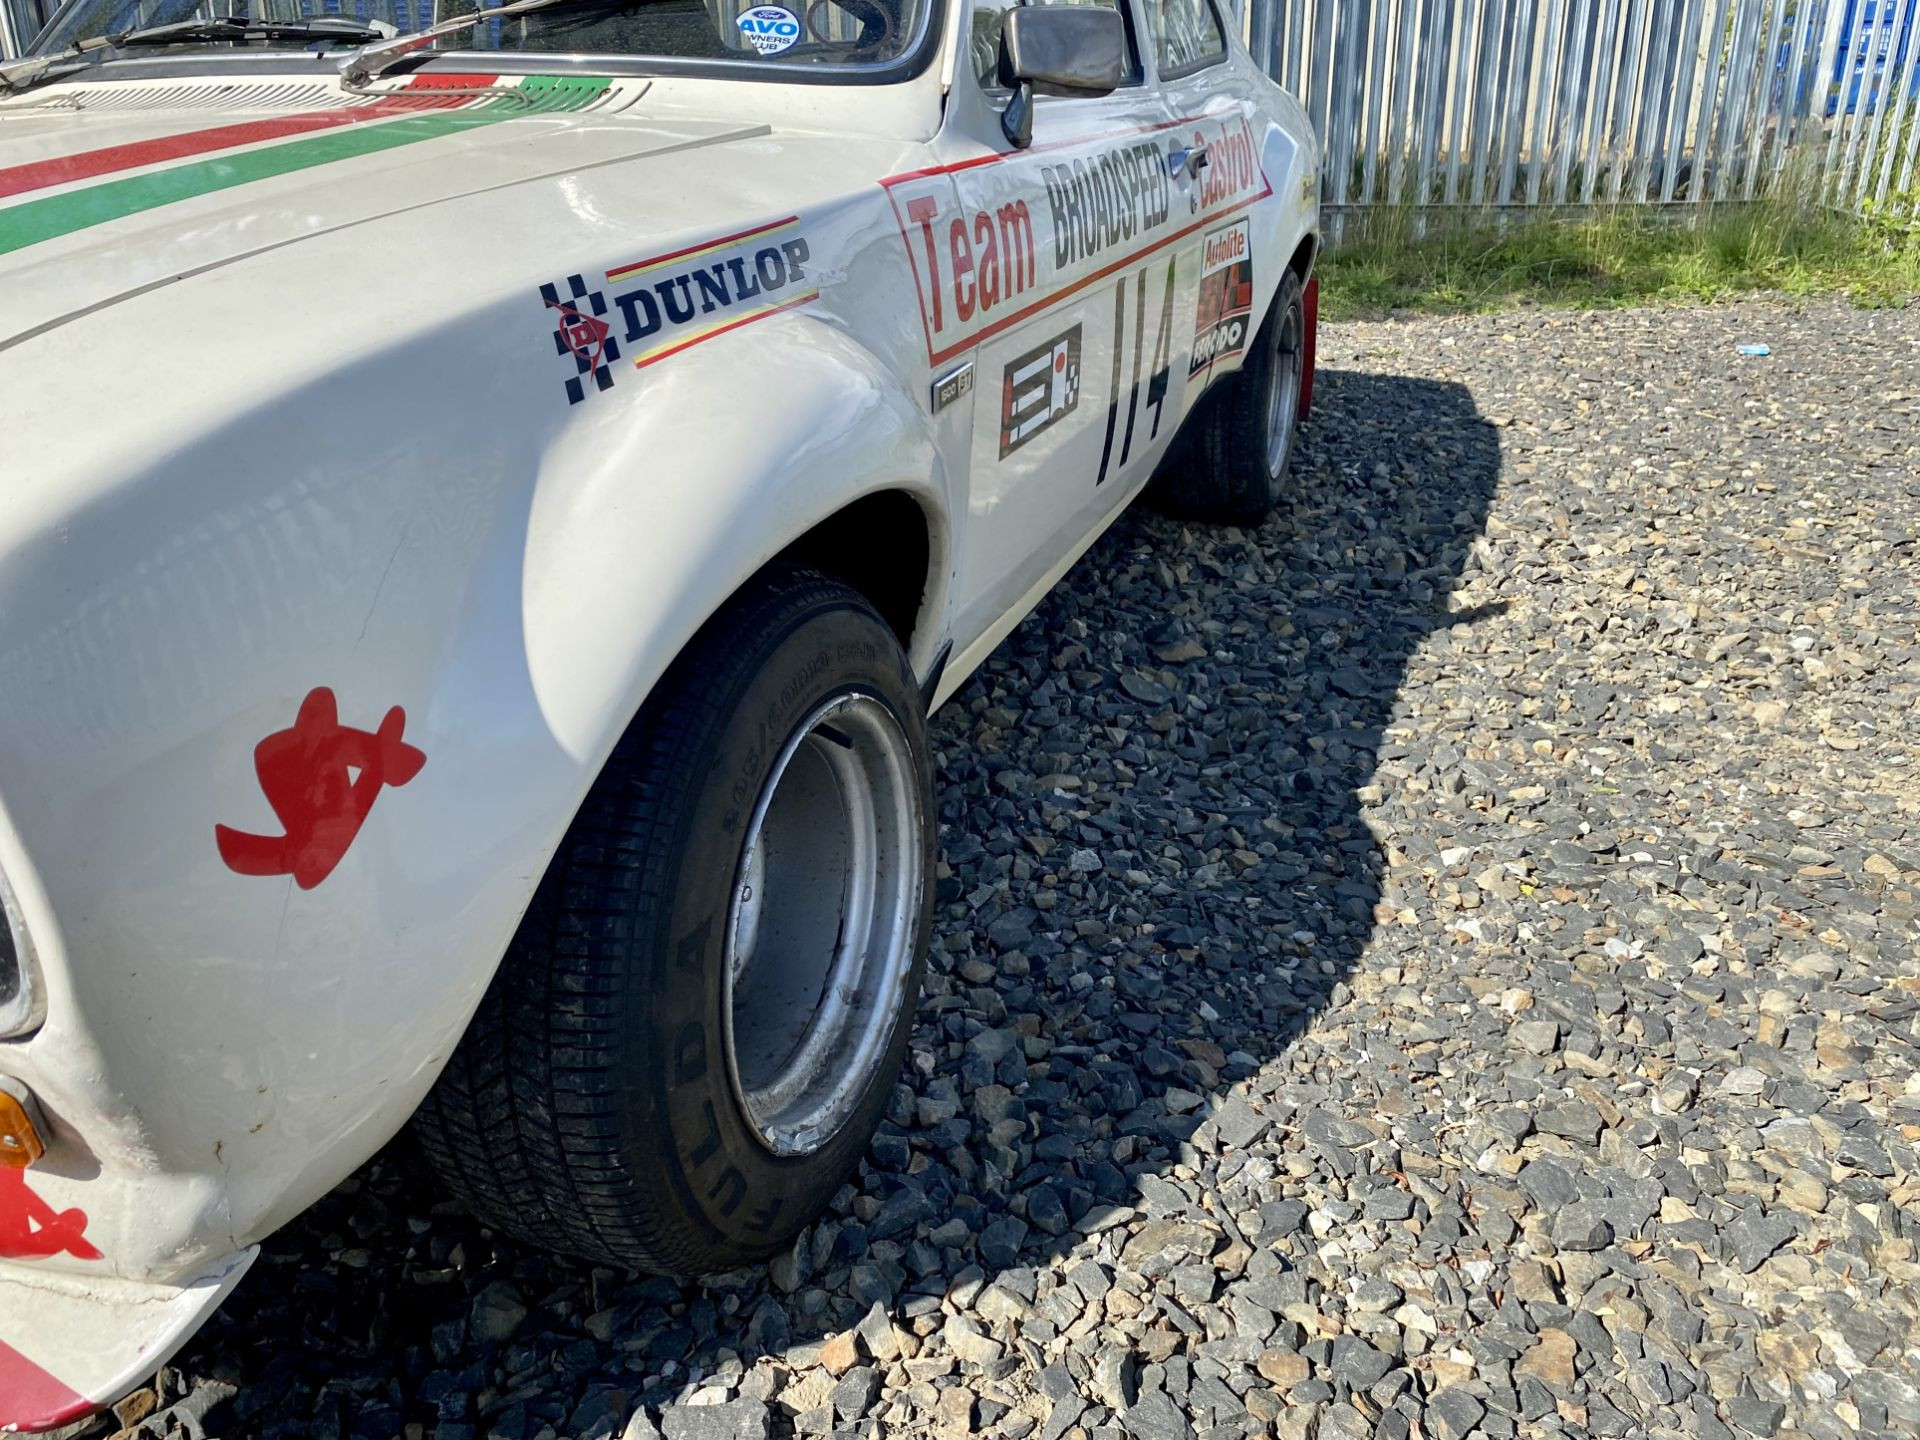 Ford Escort Mexico - Image 32 of 51